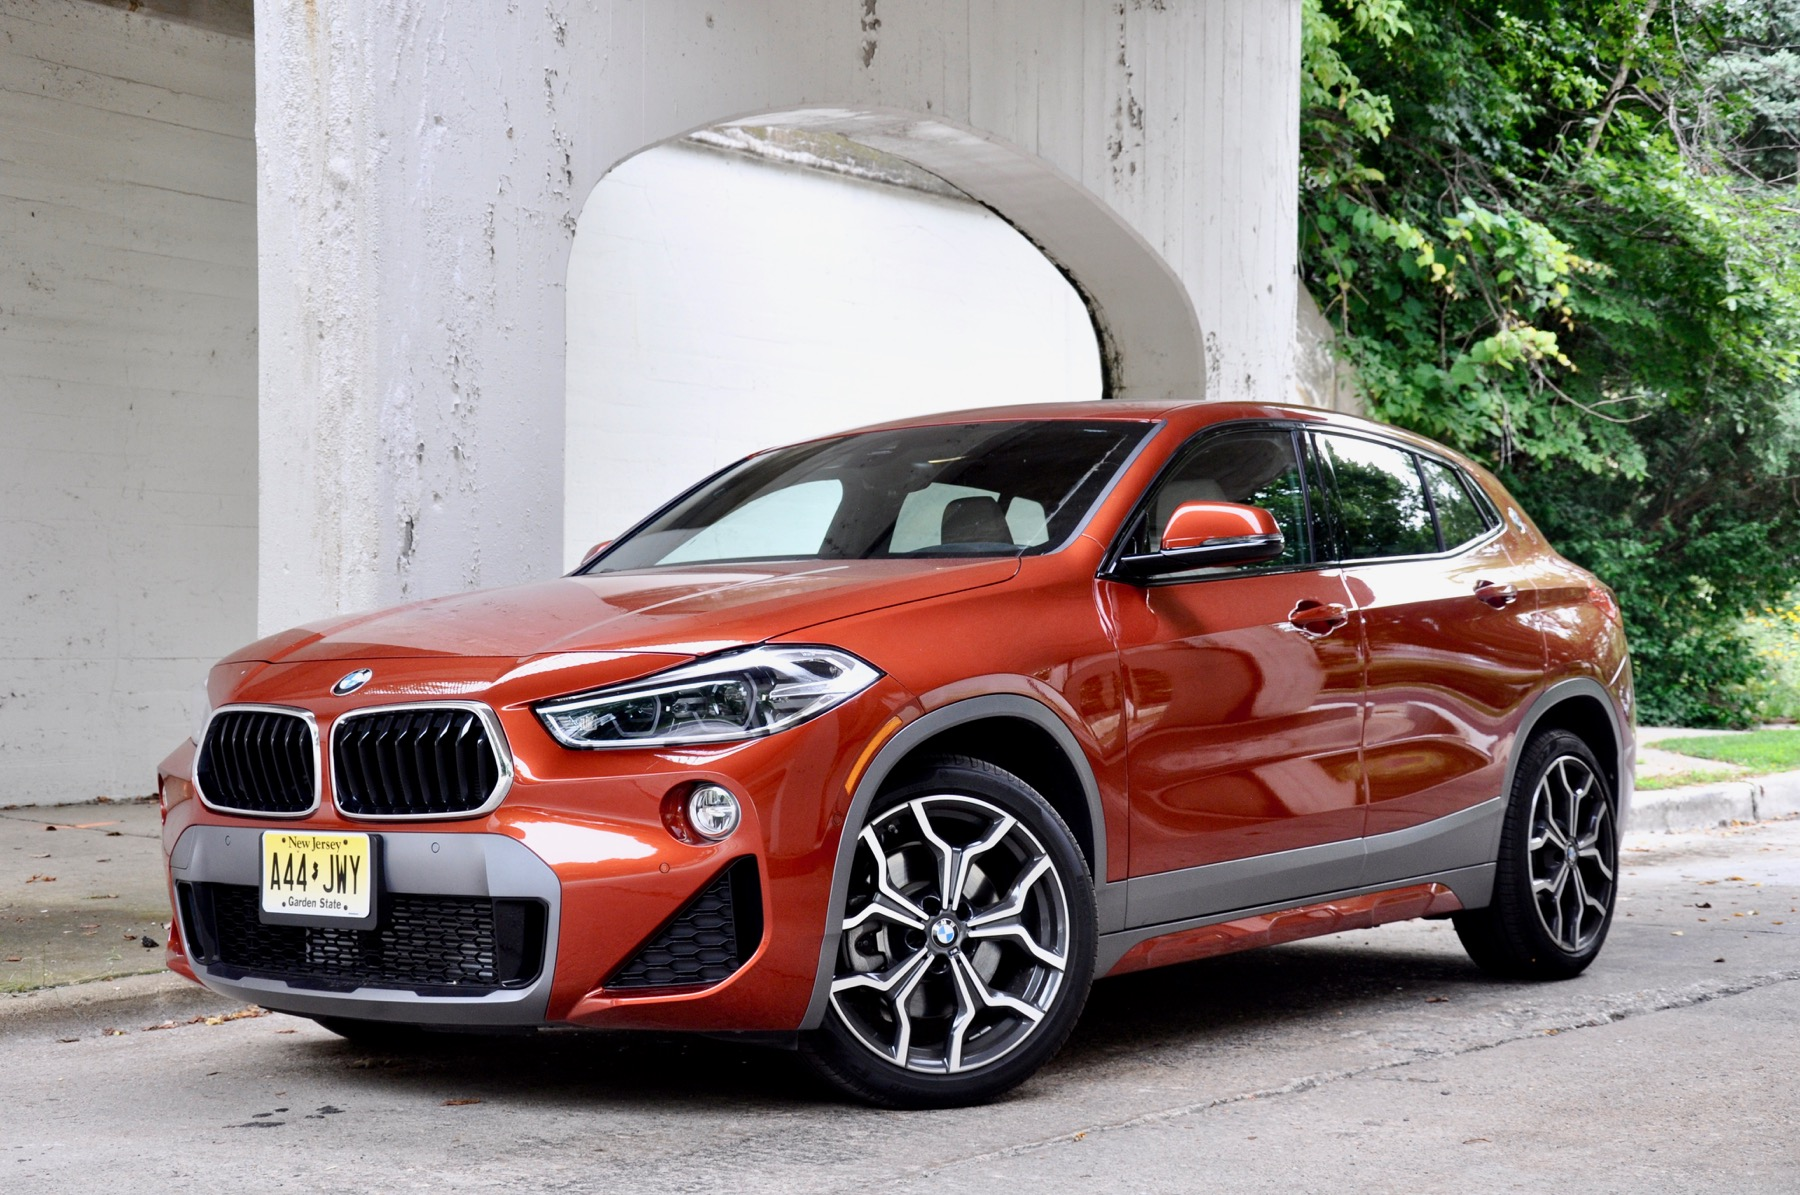 BMW X1 BMW X1 Mini Countryman JCW